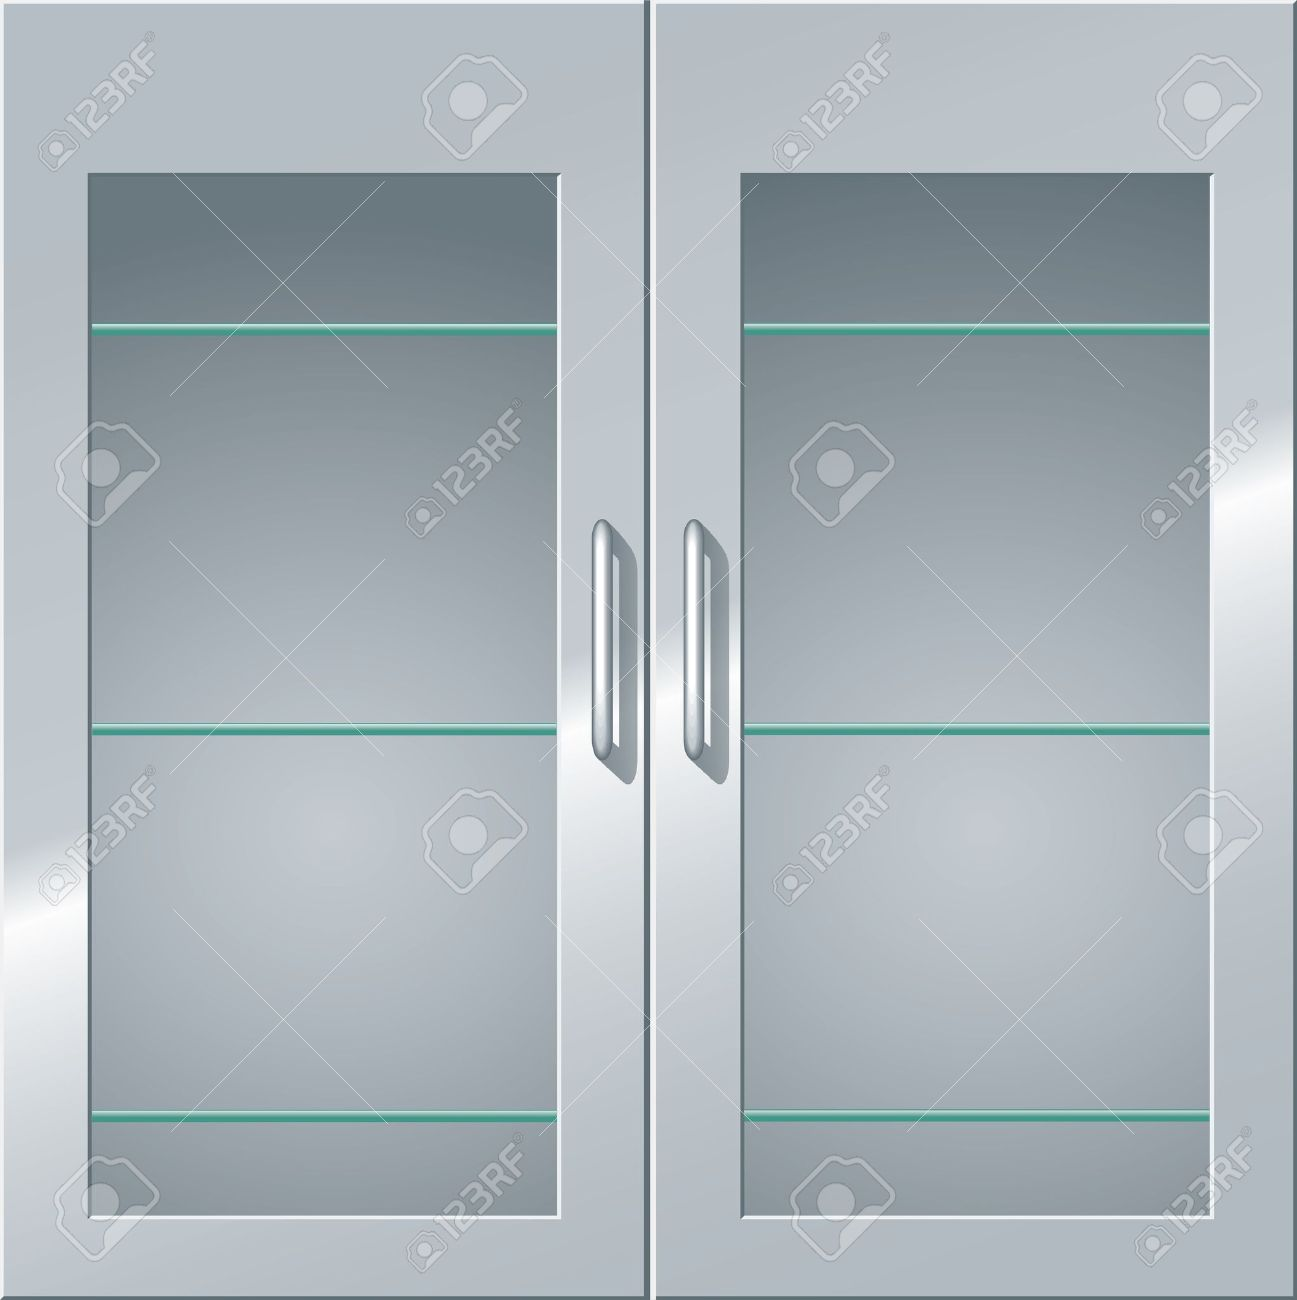 Front View Of A Metal Cabinet With Glass Doors And Shelves